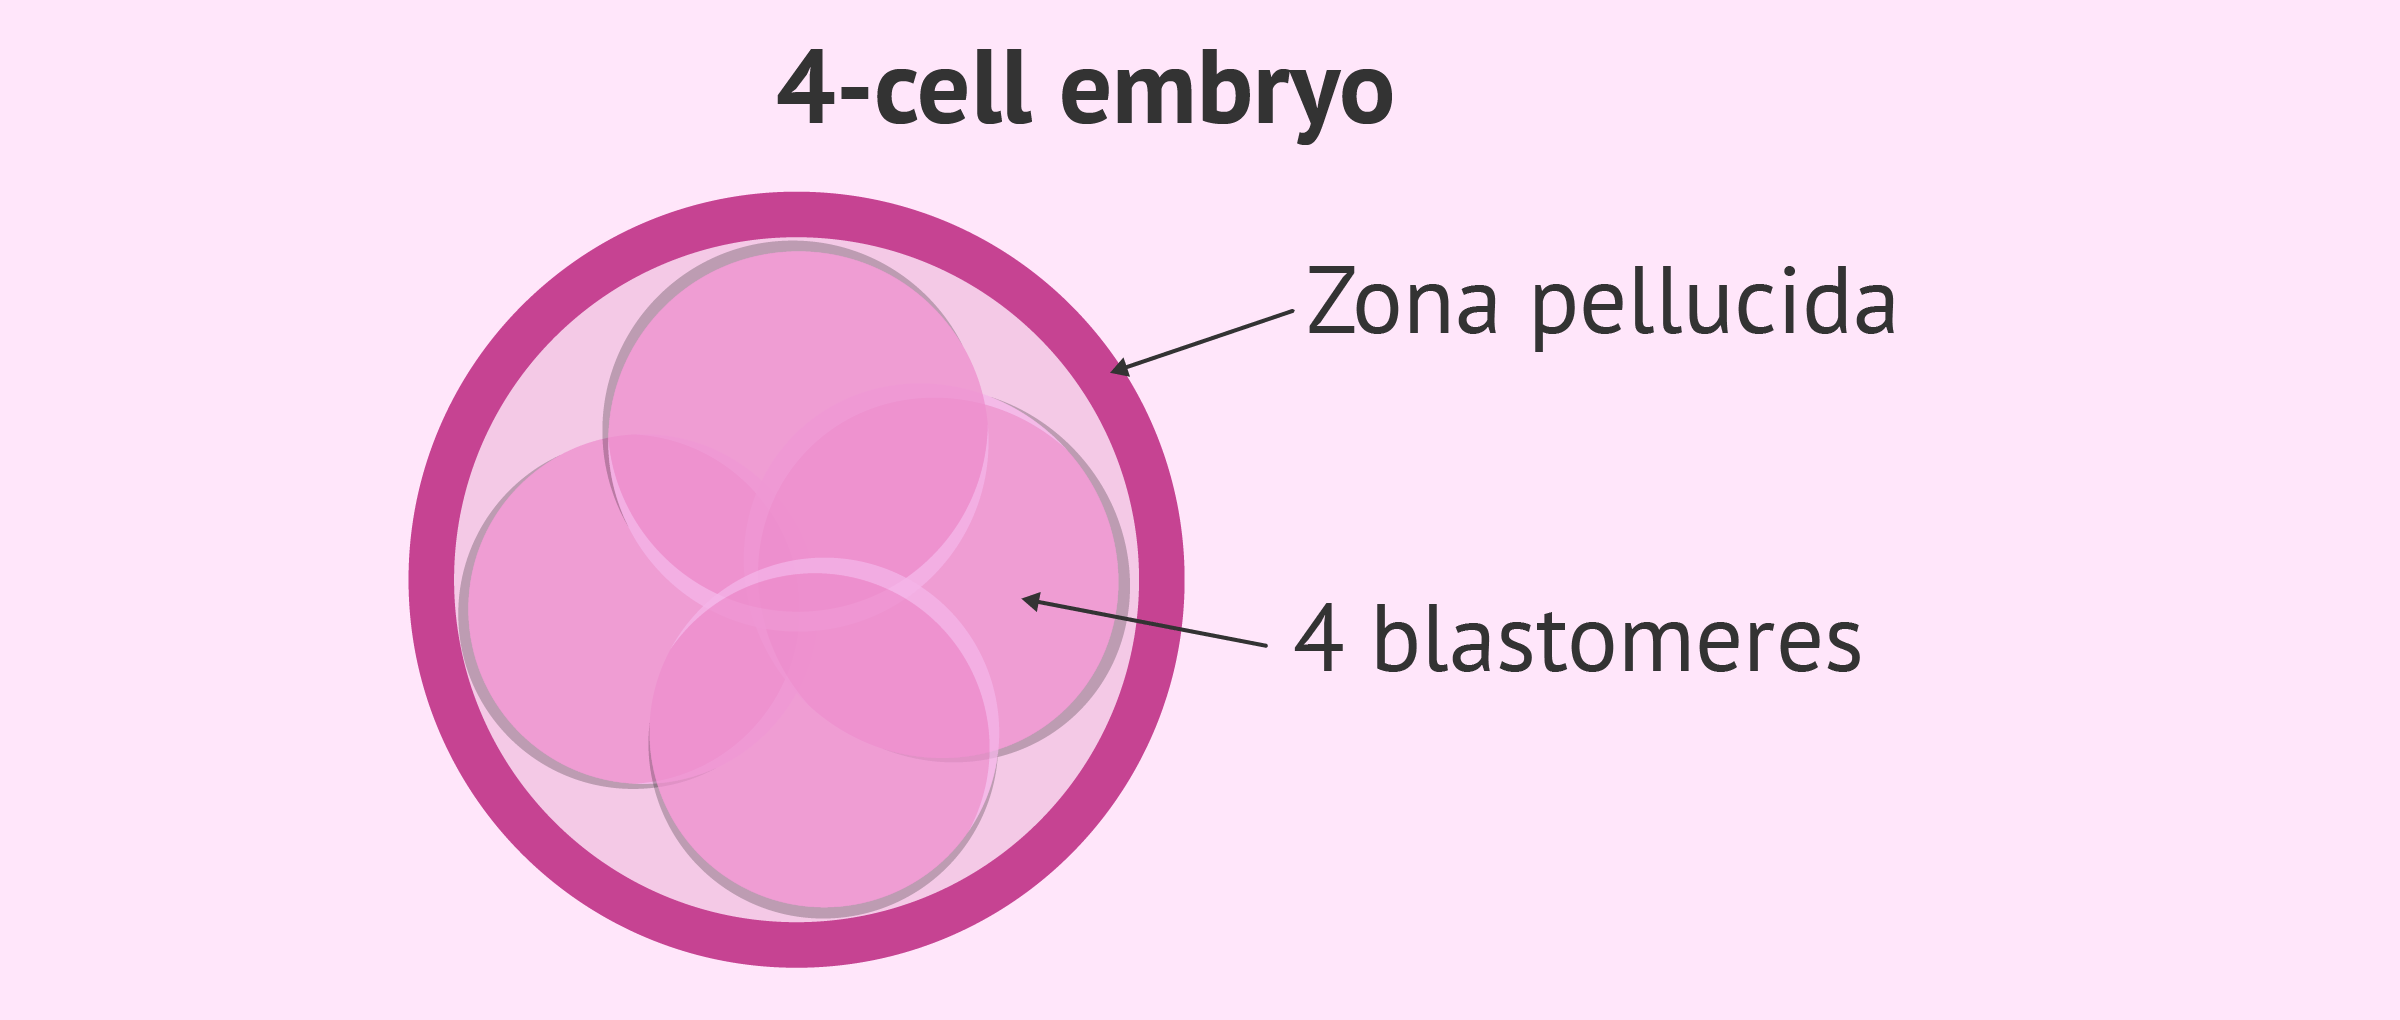 Embryonic stage: 4-cell embryo